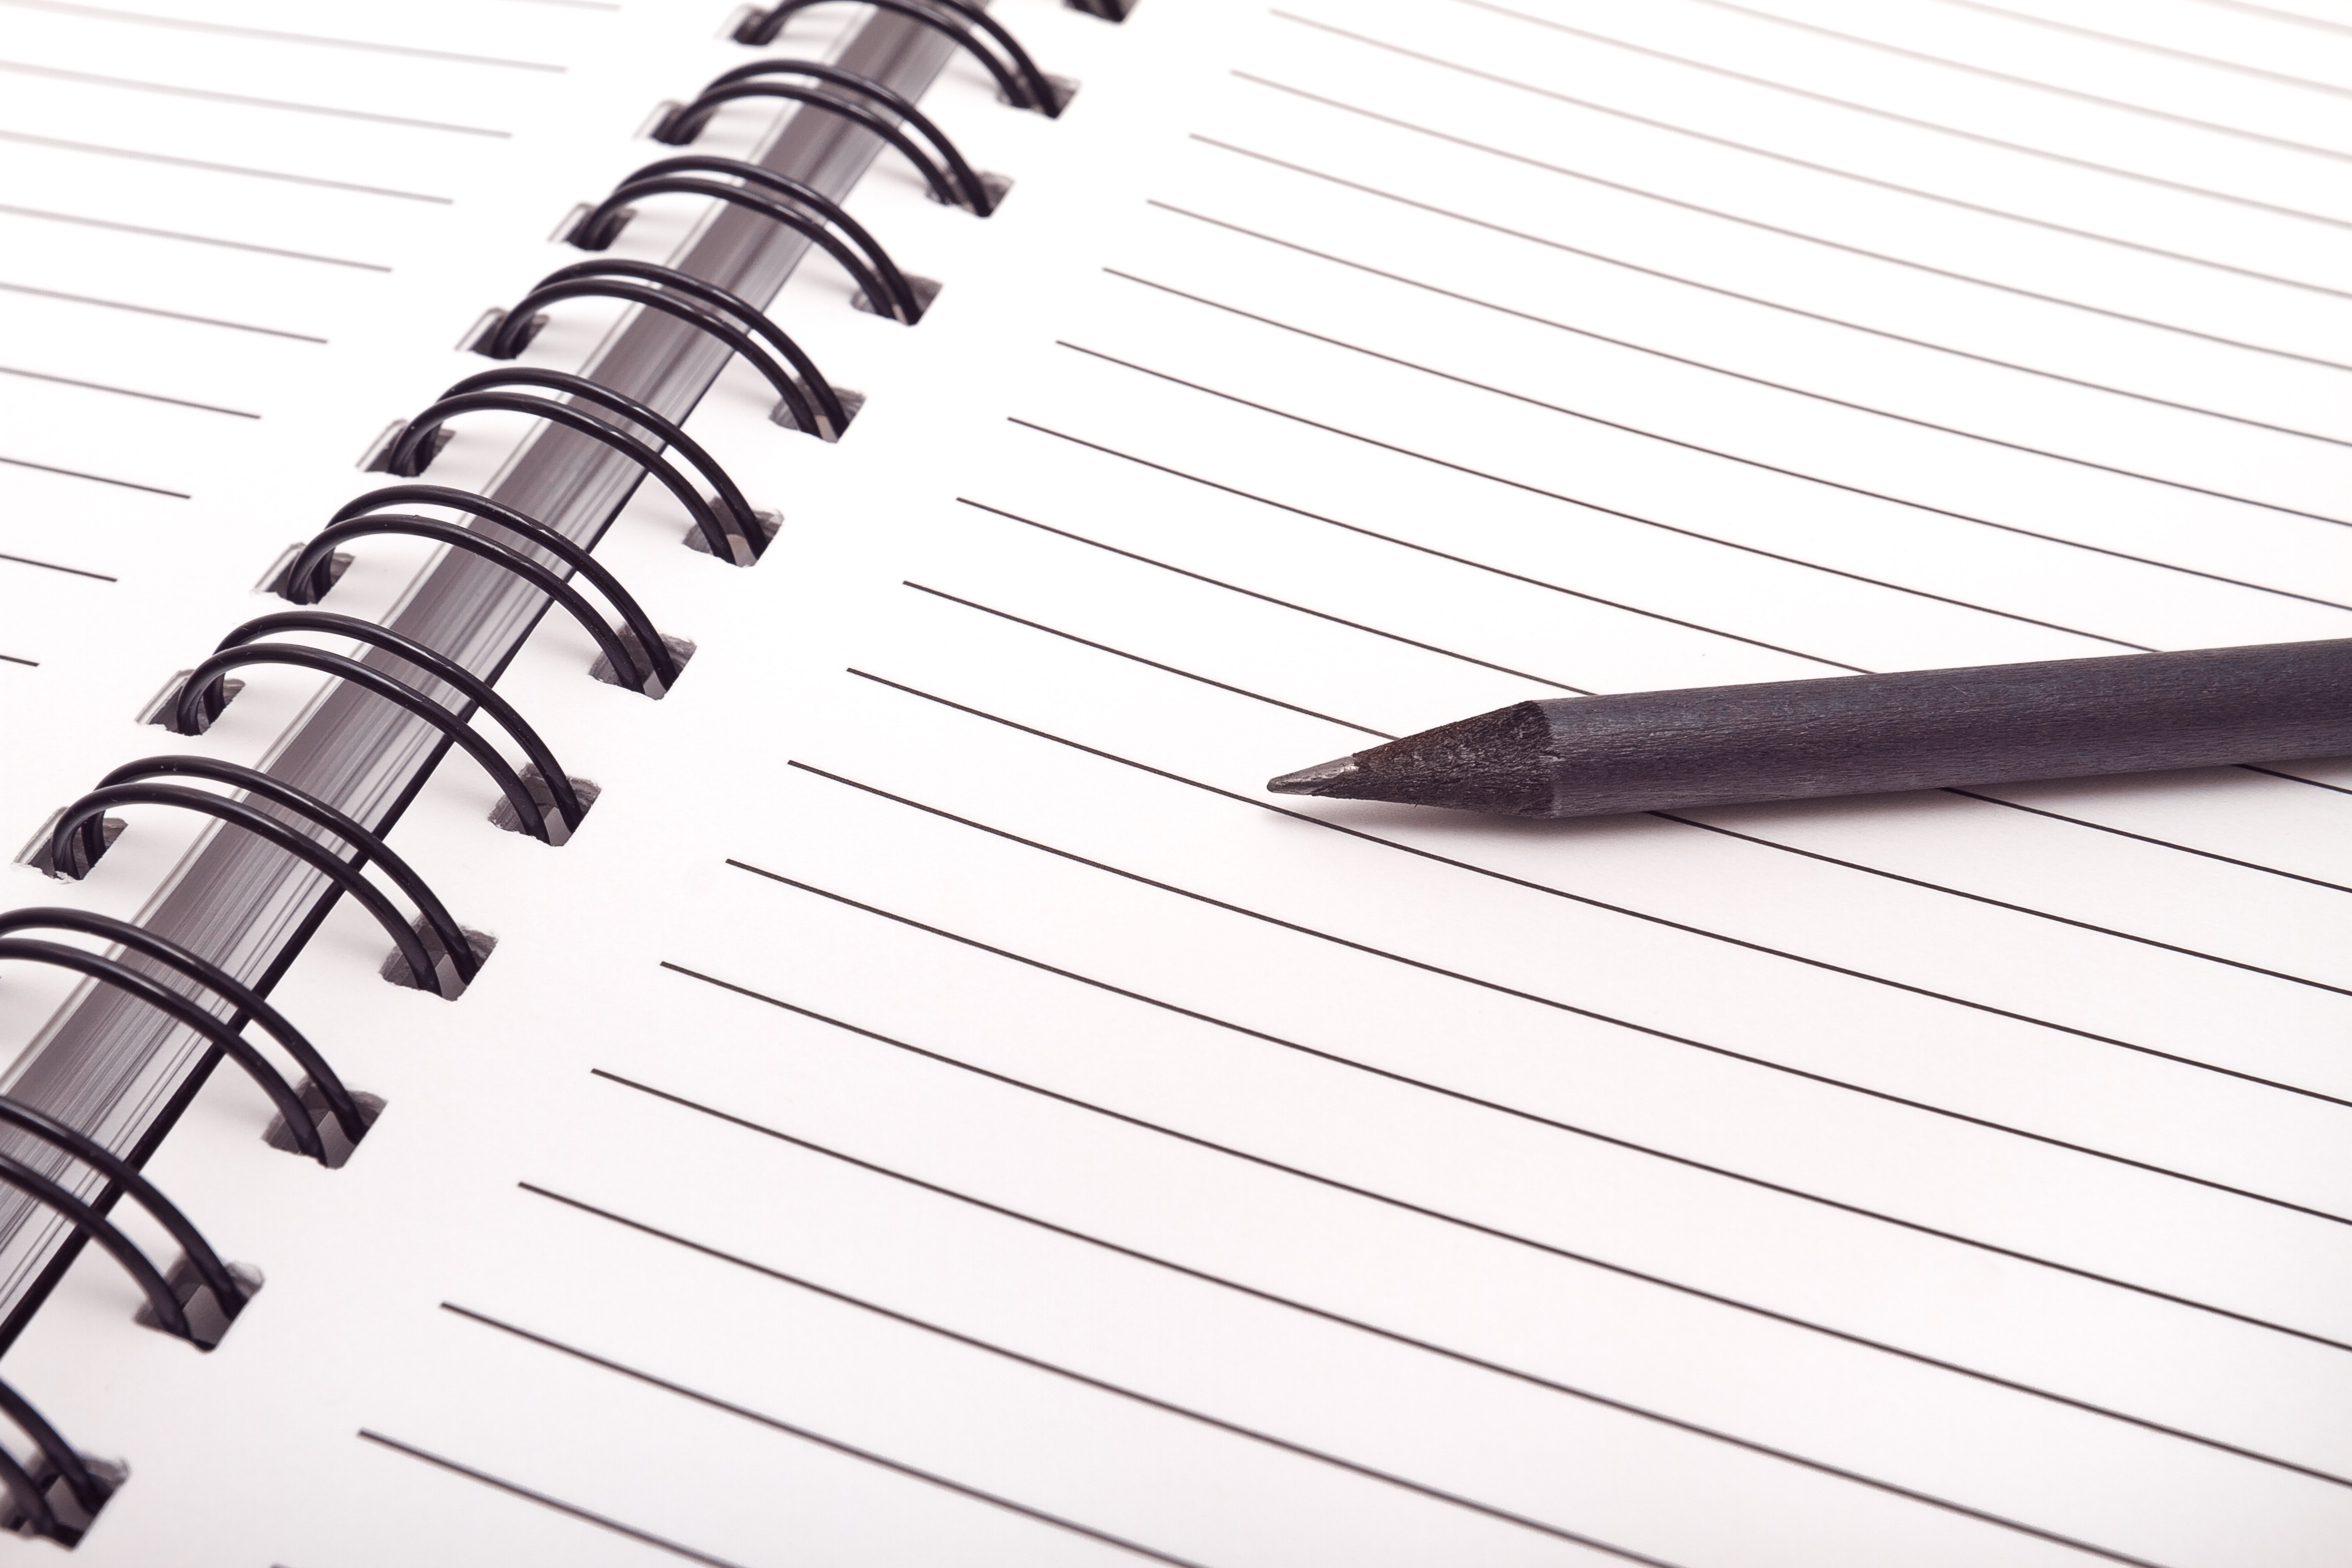 Close-up of Pen on Table, Paper, Pen, Page, Office, HQ Photo